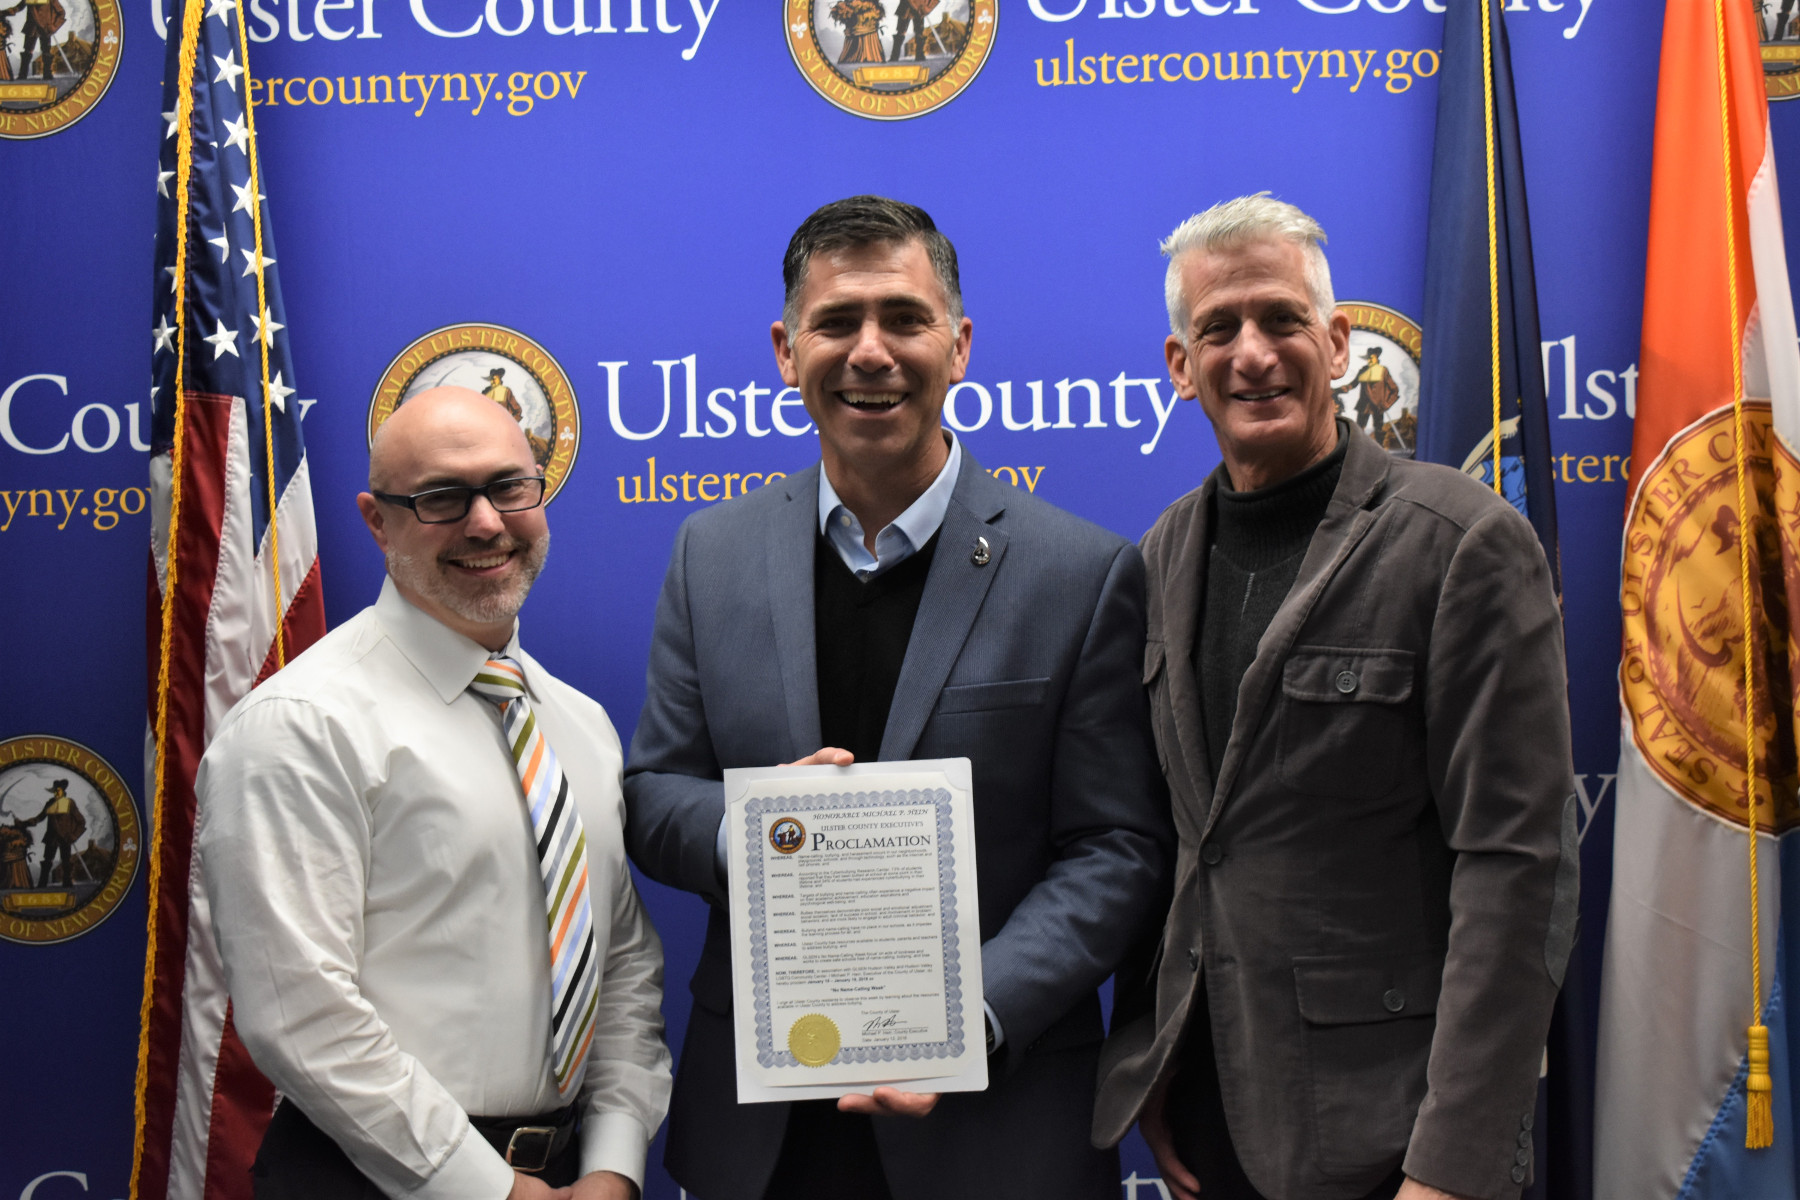 ulster county government